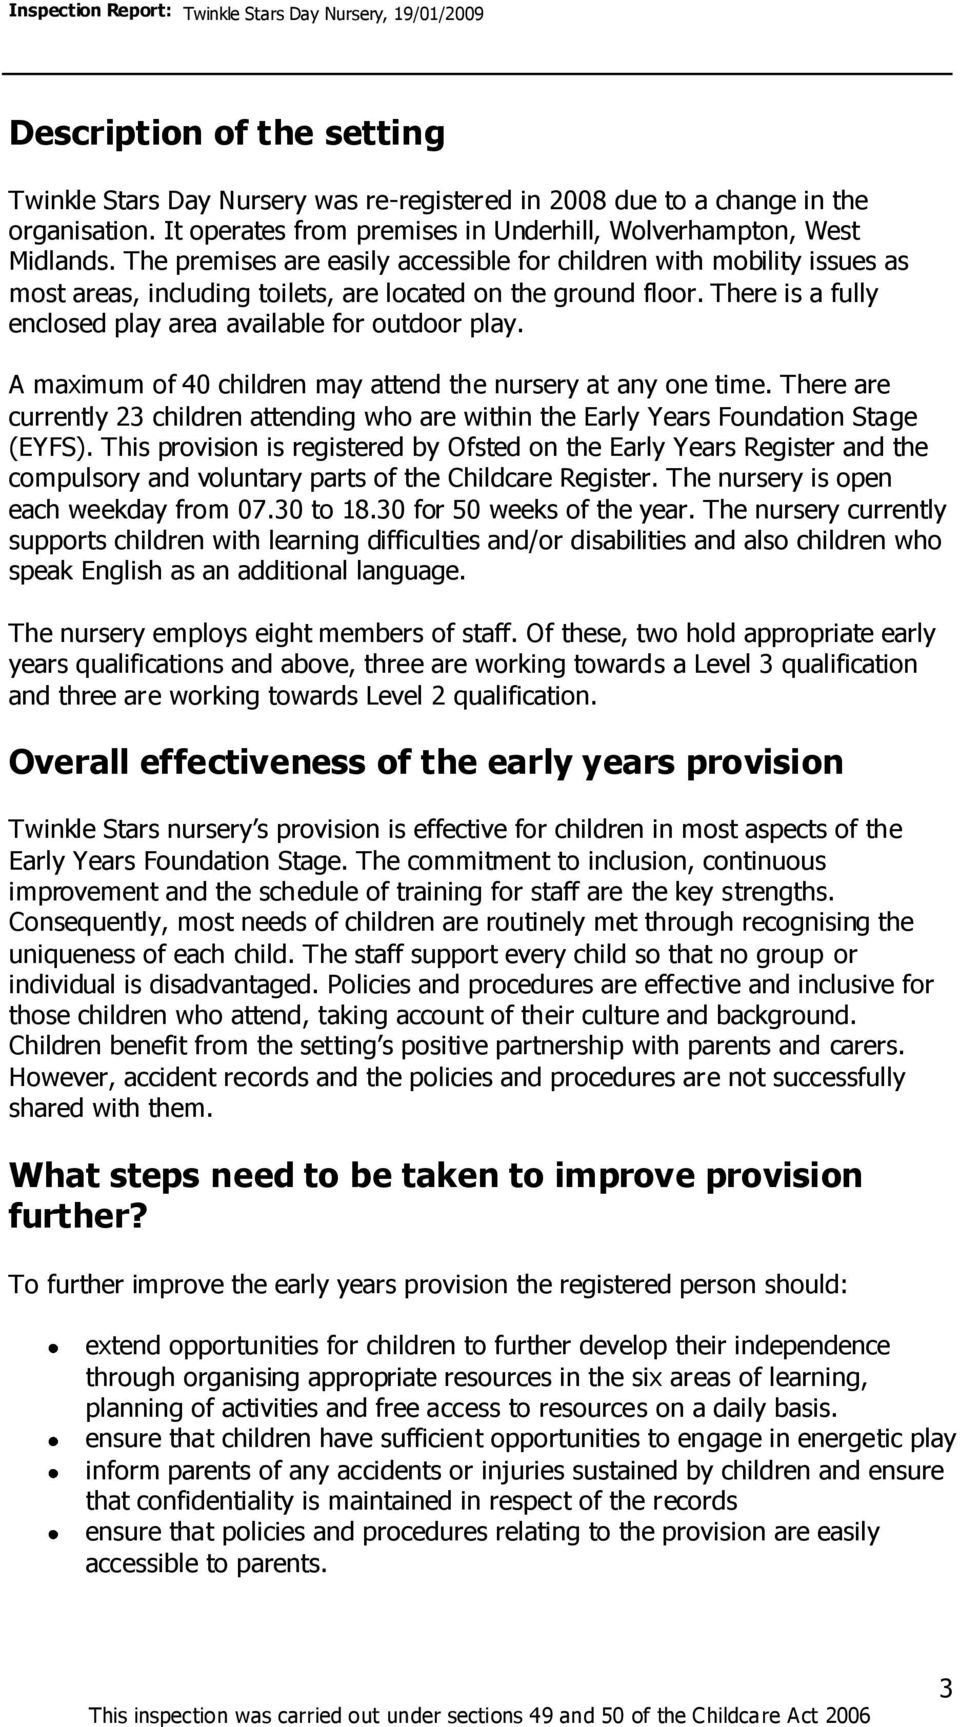 A maximum of 40 children may attend the nursery at any one time. There are currently 3 children attending who are within the Early Years Foundation Stage (EYFS).